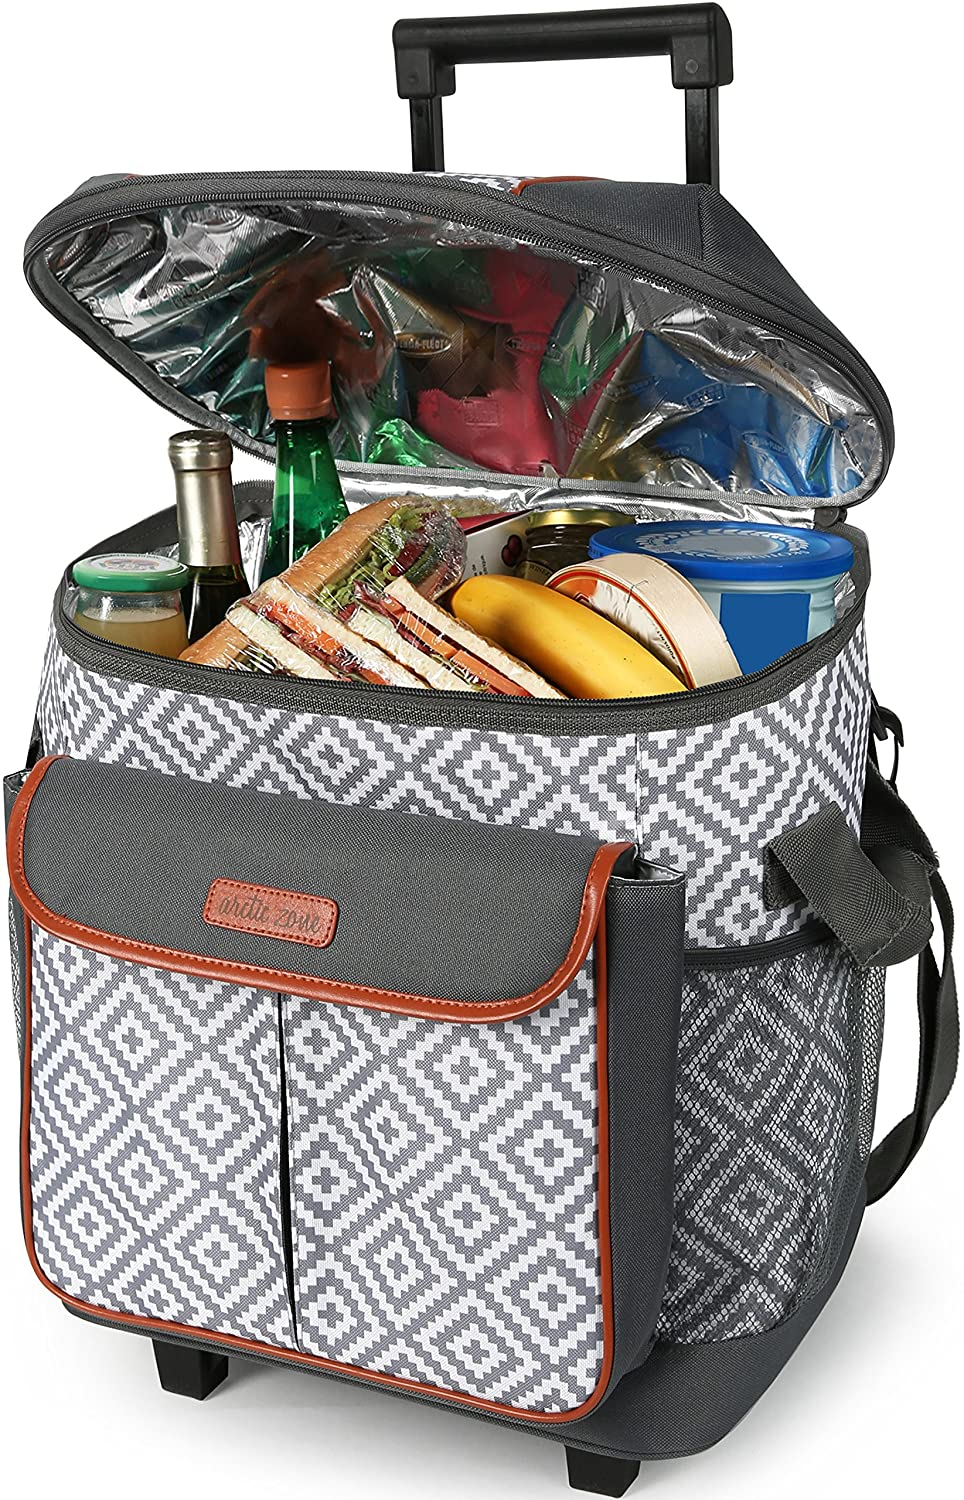 Arctic Zone 44-81453-00-08 Hot Cold Insulated Rolling Tote, 44 Can Capacity, Diamond Mosaic – Gray White